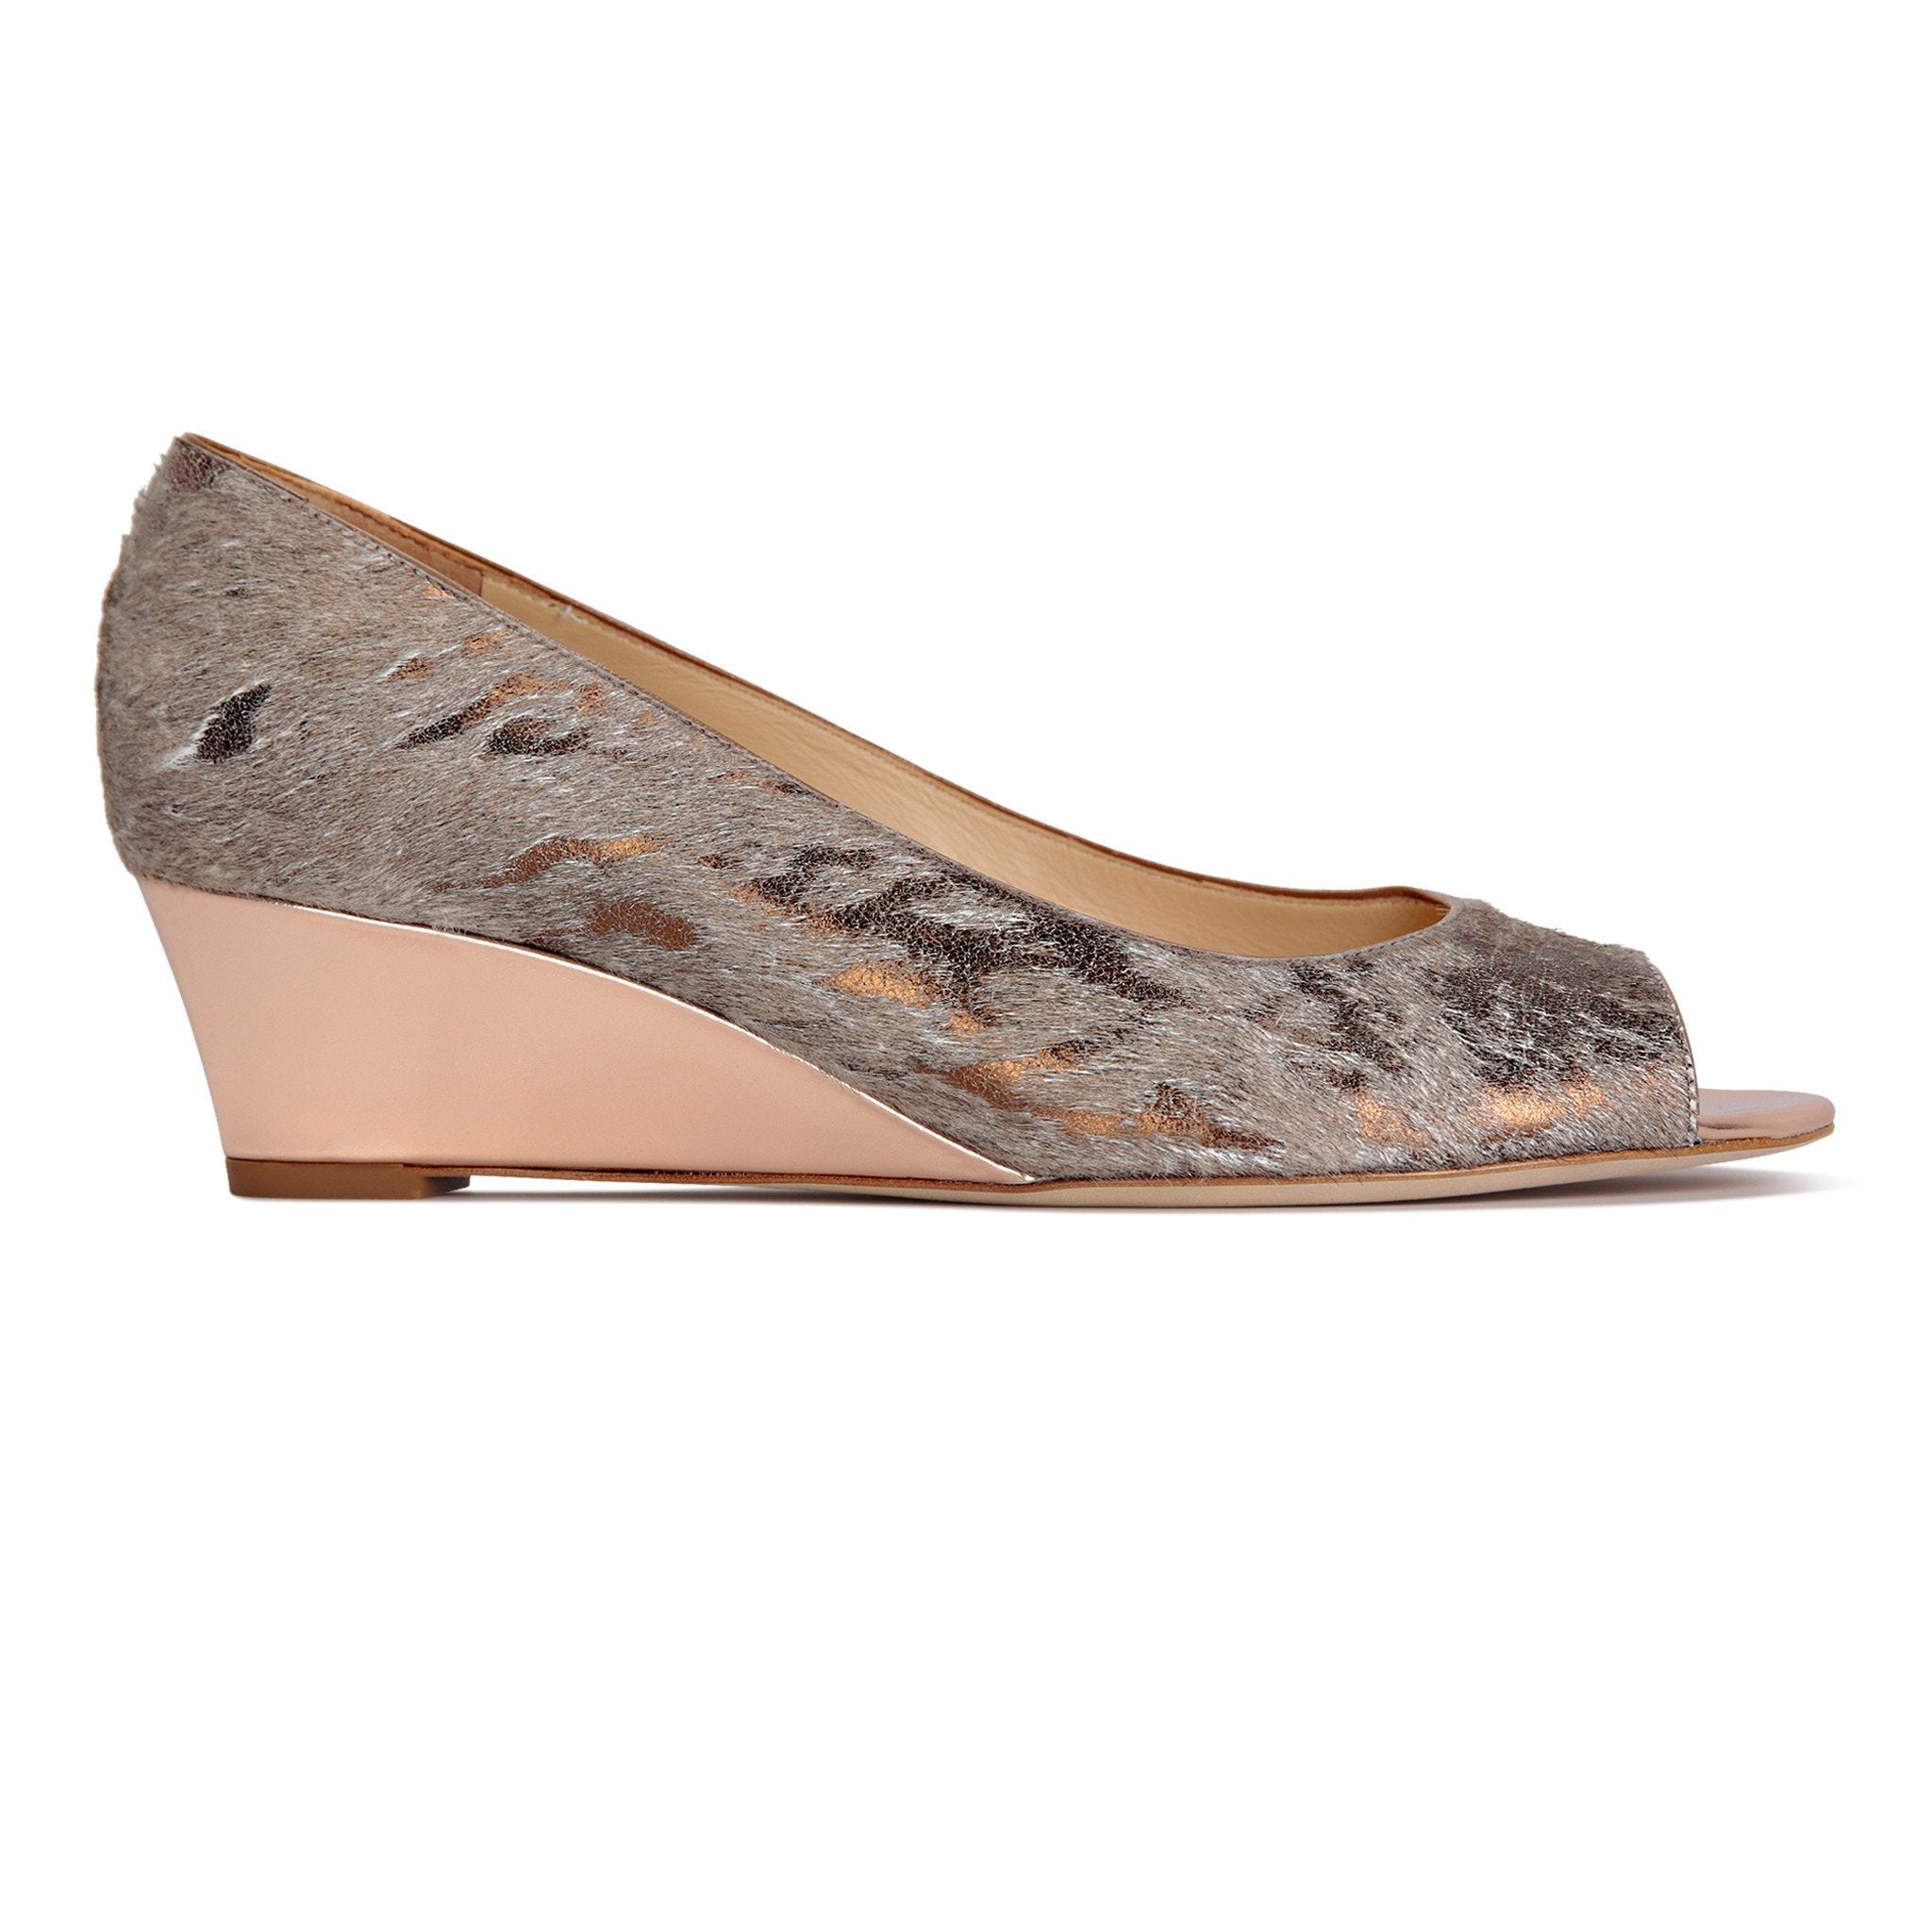 SARDINIA - Calf Hair Vintage Copper + Metallic Copper, VIAJIYU - Women's Hand Made Sustainable Luxury Shoes. Made in Italy. Made to Order.